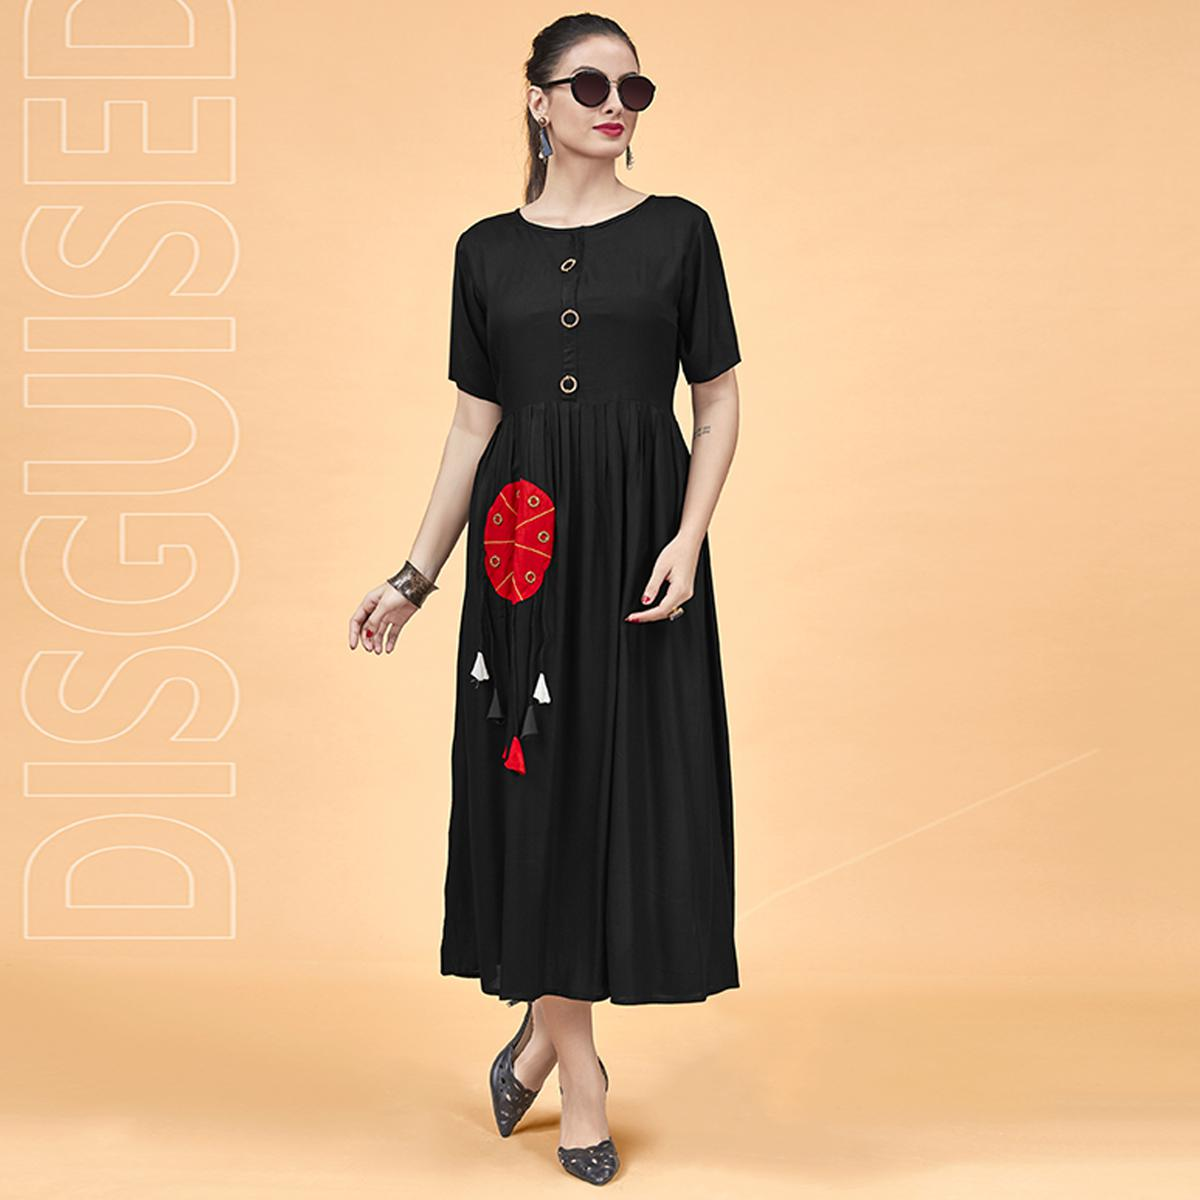 Captivating Black Colored Party Wear Fancy Heavy Rayon Kurti